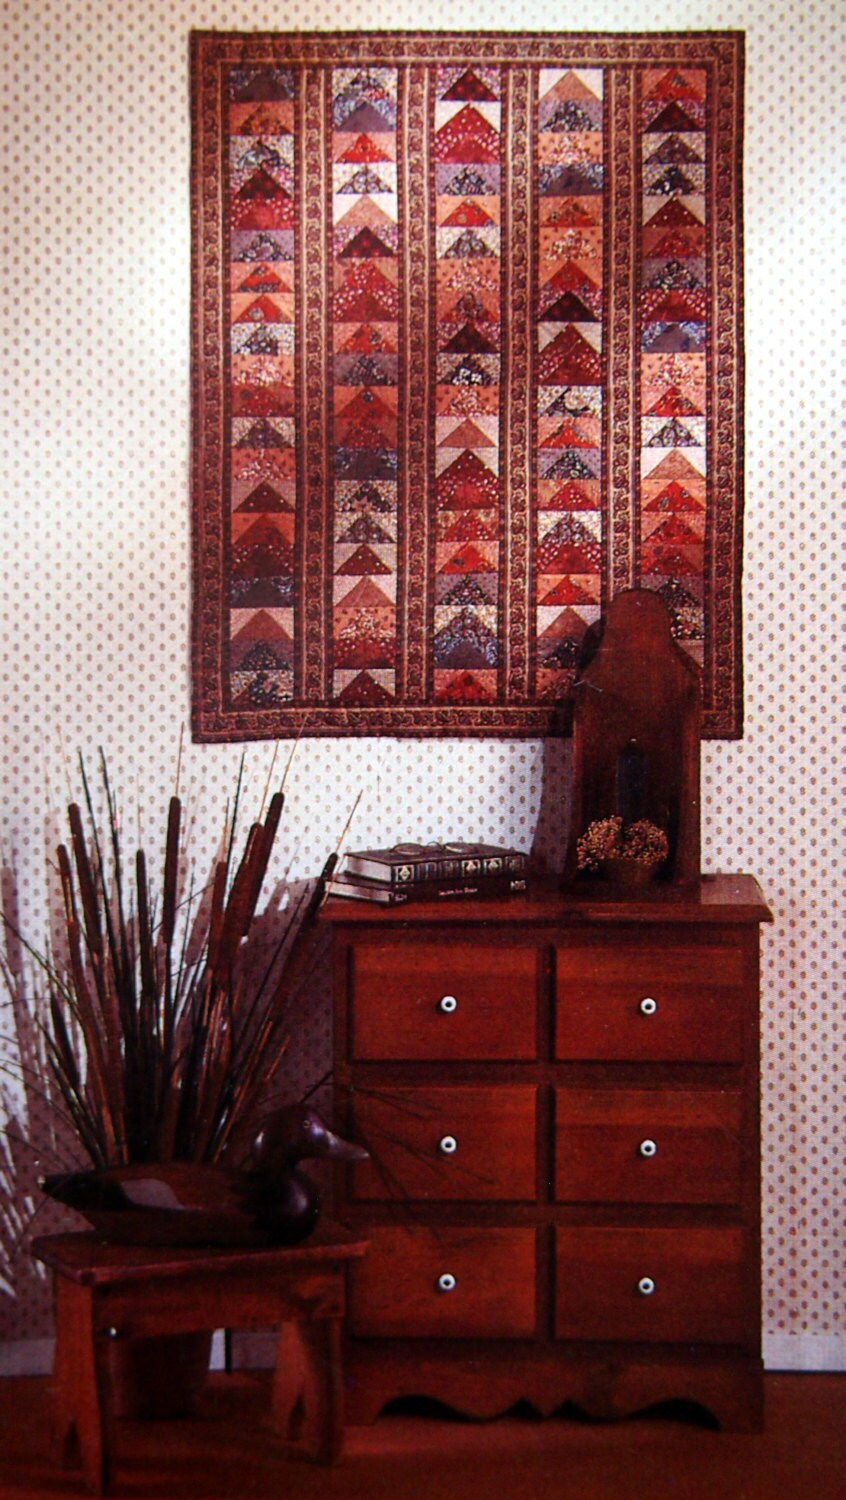 The Flying Geese Quilt By Blanche Young Amp Helen Young